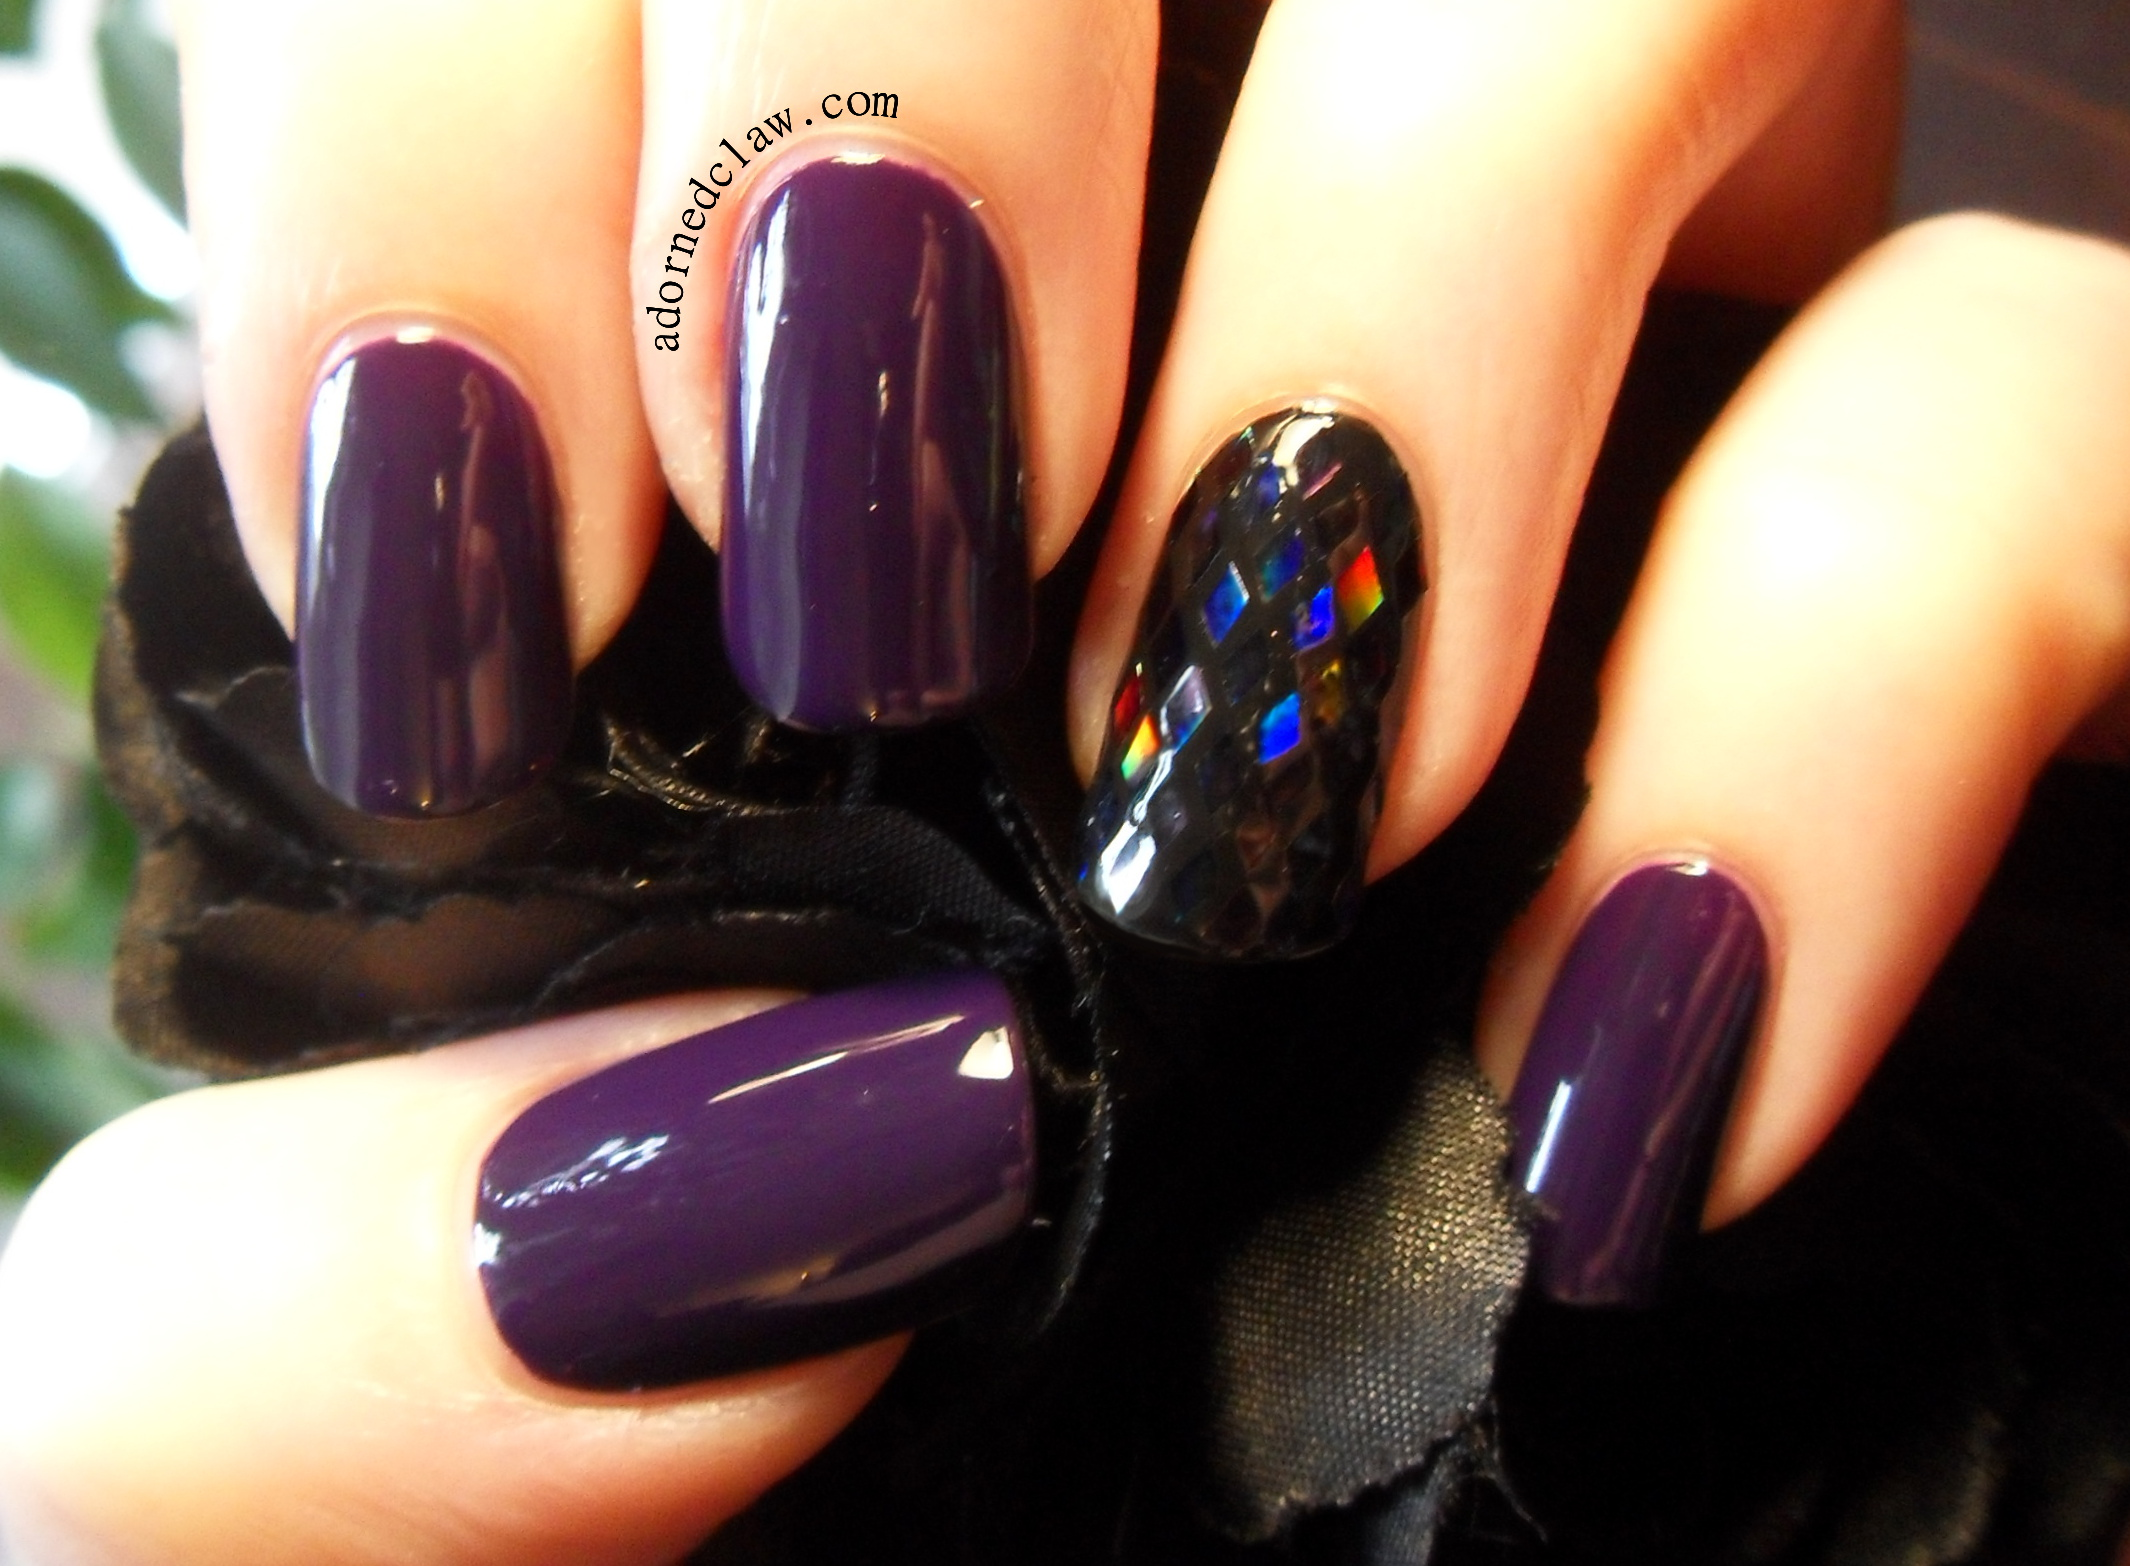 Revlon Black Magic   The Adorned Claw   Page 2